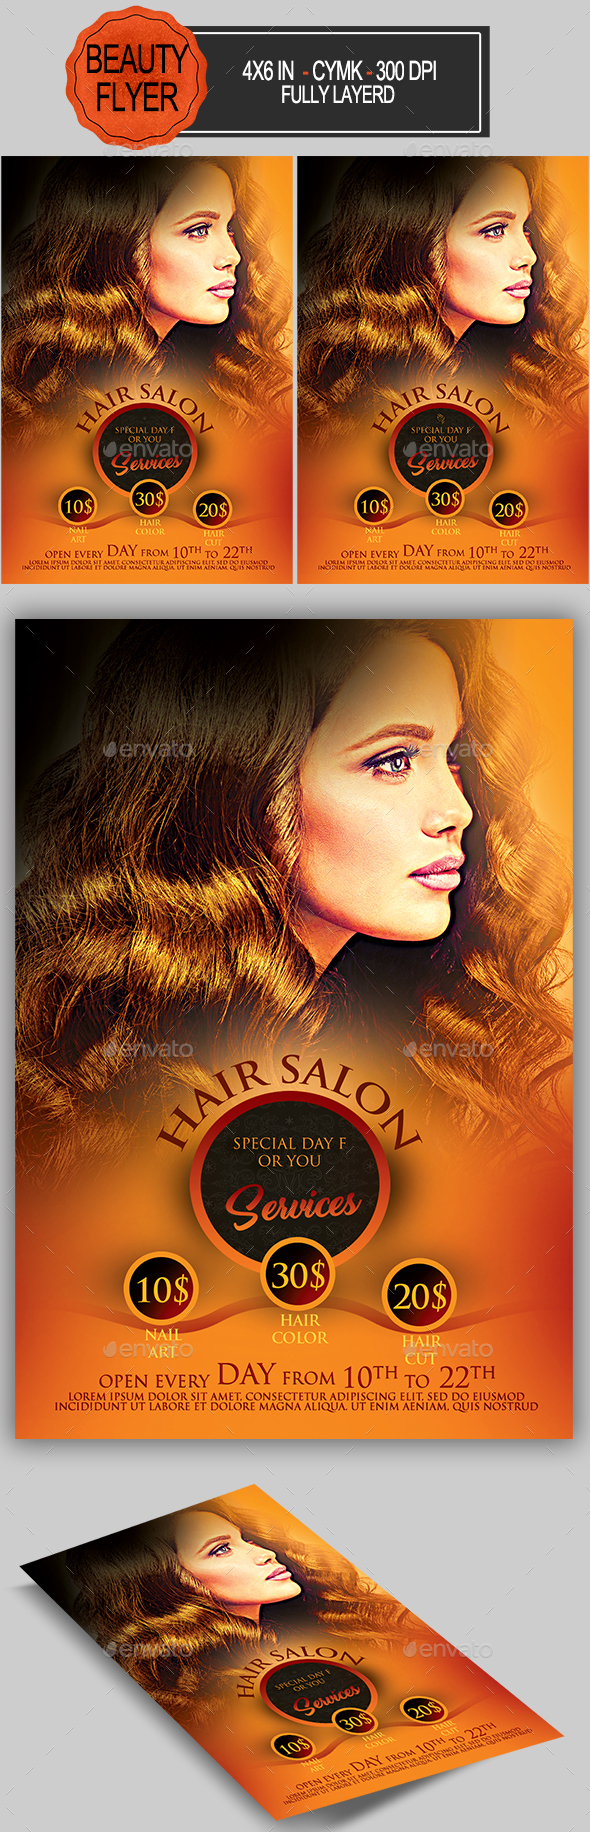 Hair Salon Flyer - Commerce Flyers